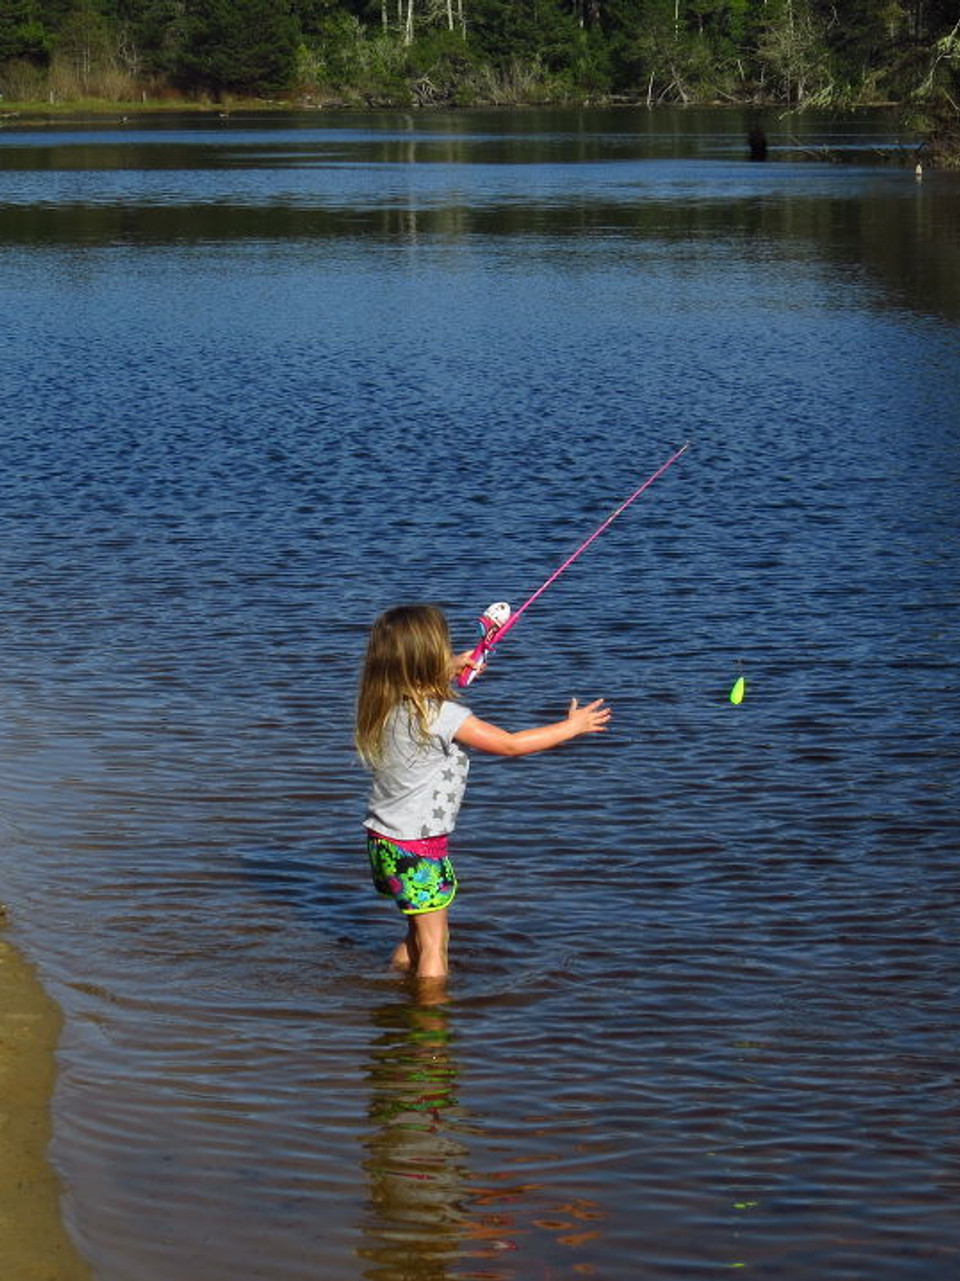 Free Fishing Still On This Weekend But No Special Events Kval